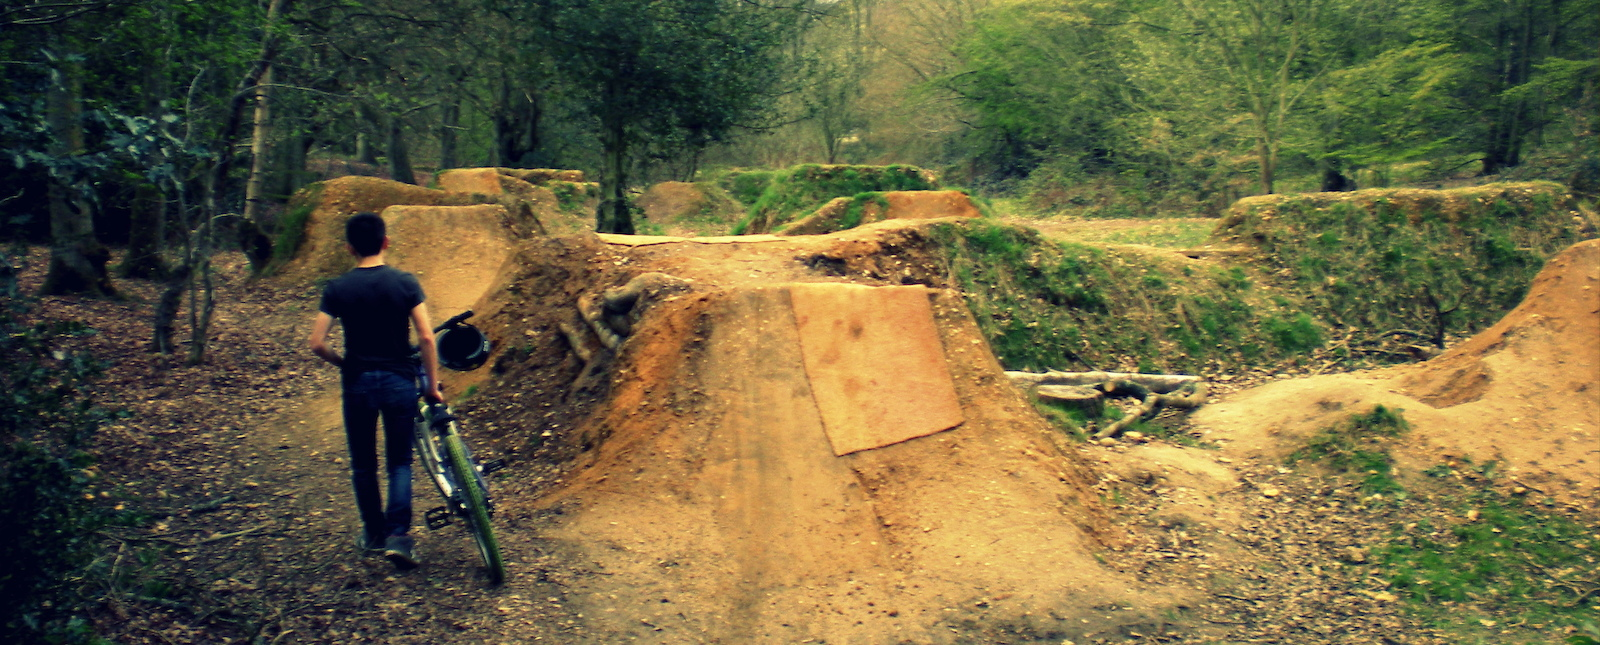 The local trails and where a kid learns to ride a bike.